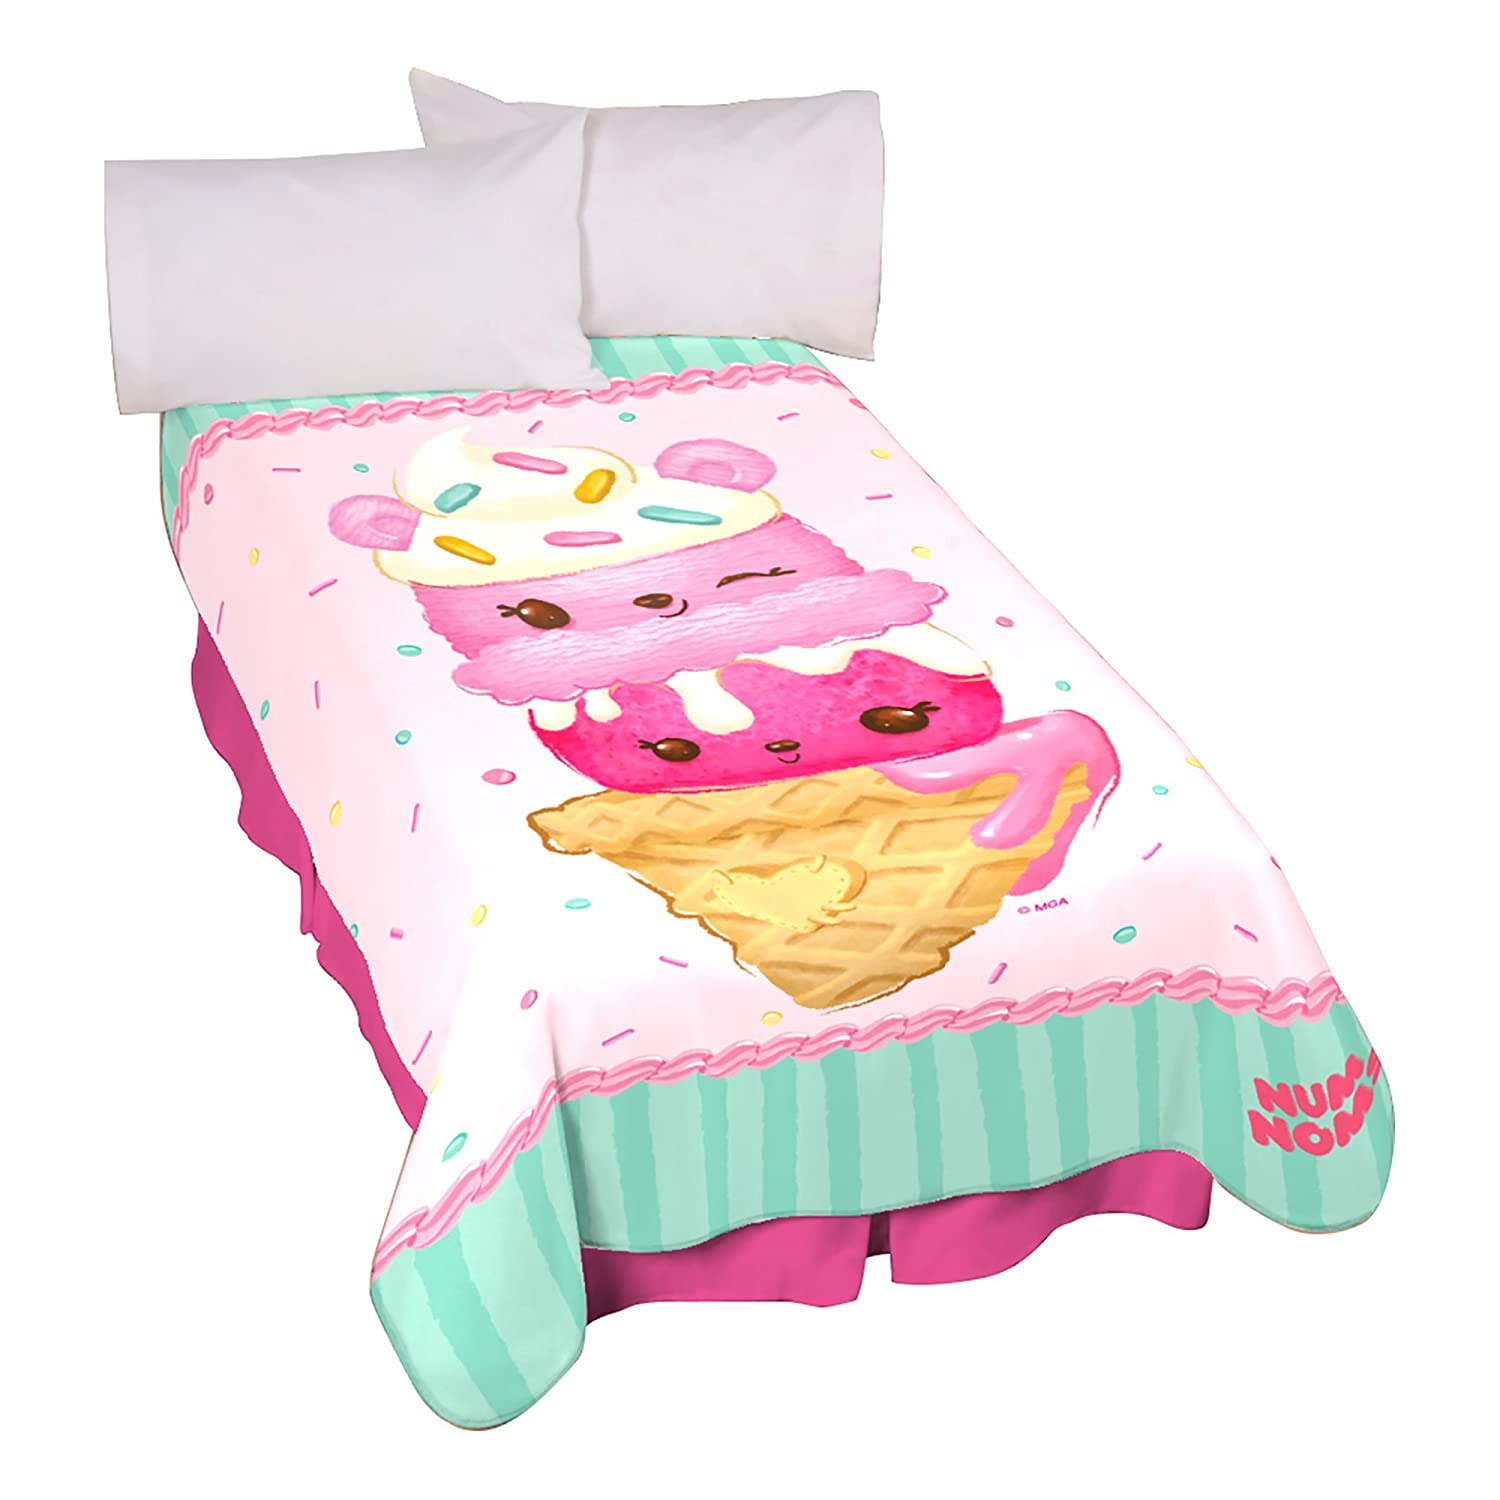 MGA Num Noms Happy and Yummy Blanket   B075Y7ZHFH